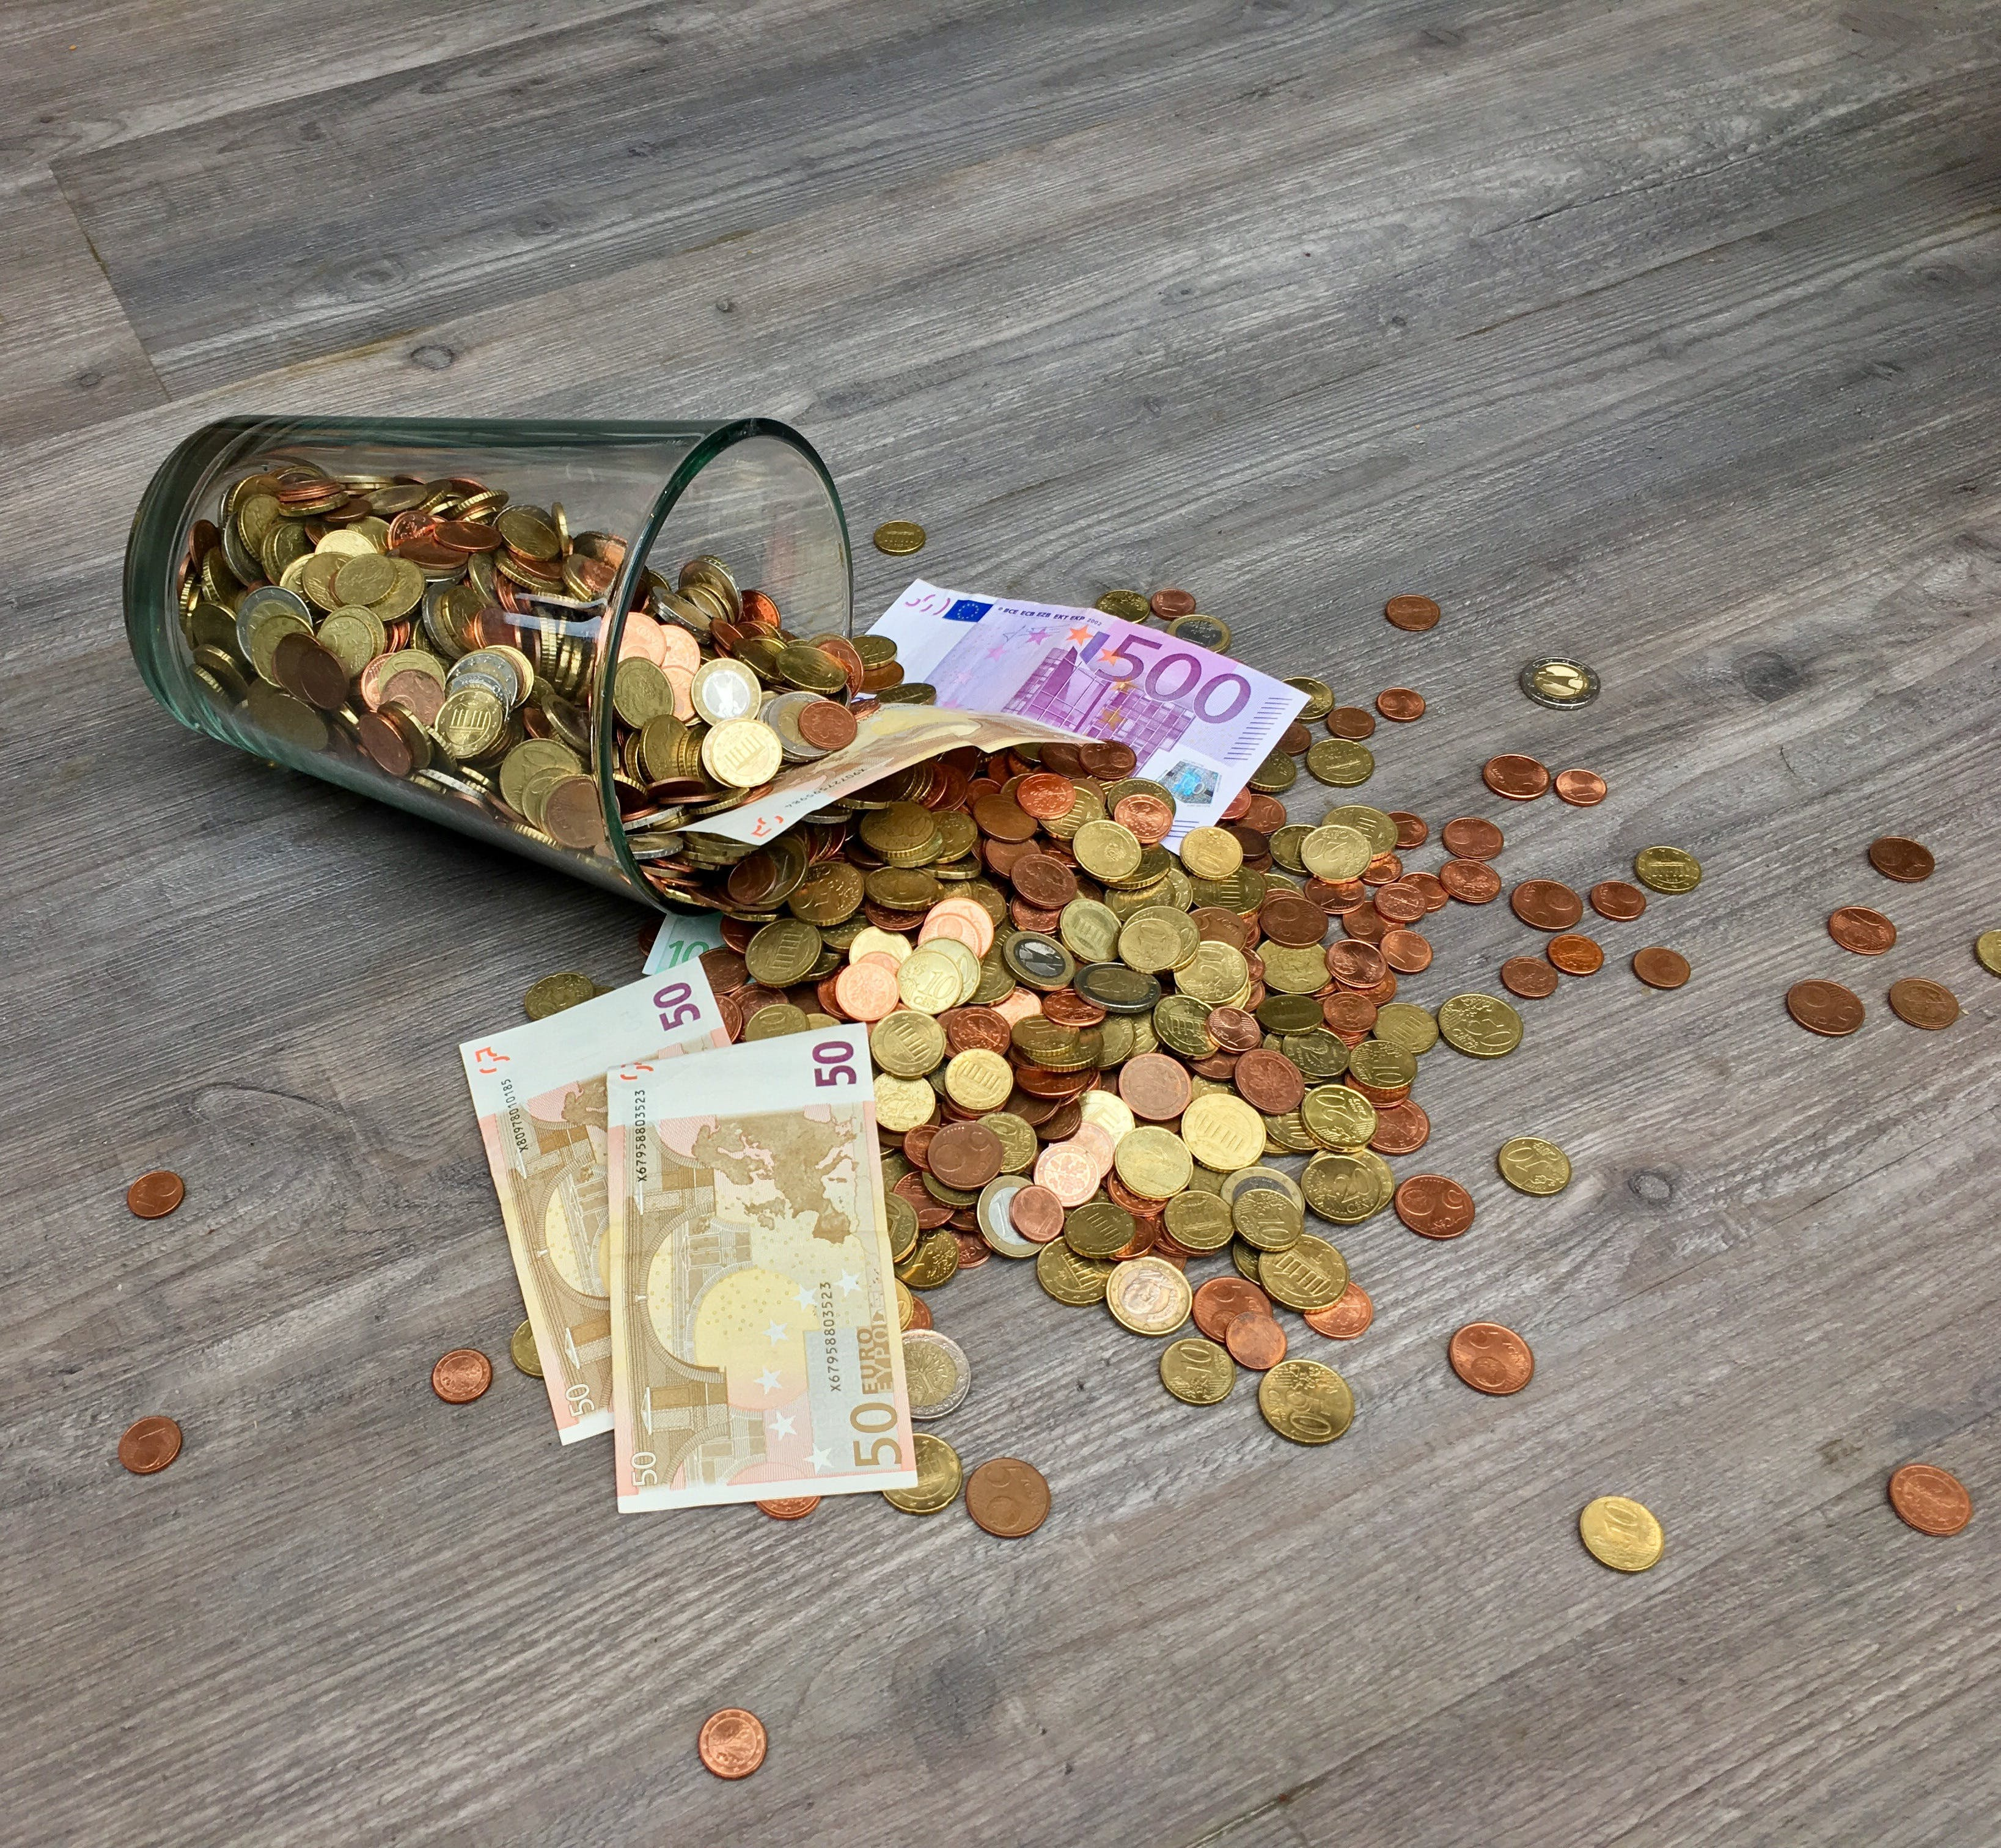 Coins and Banknotes Scattered on Gray Wooden Surface